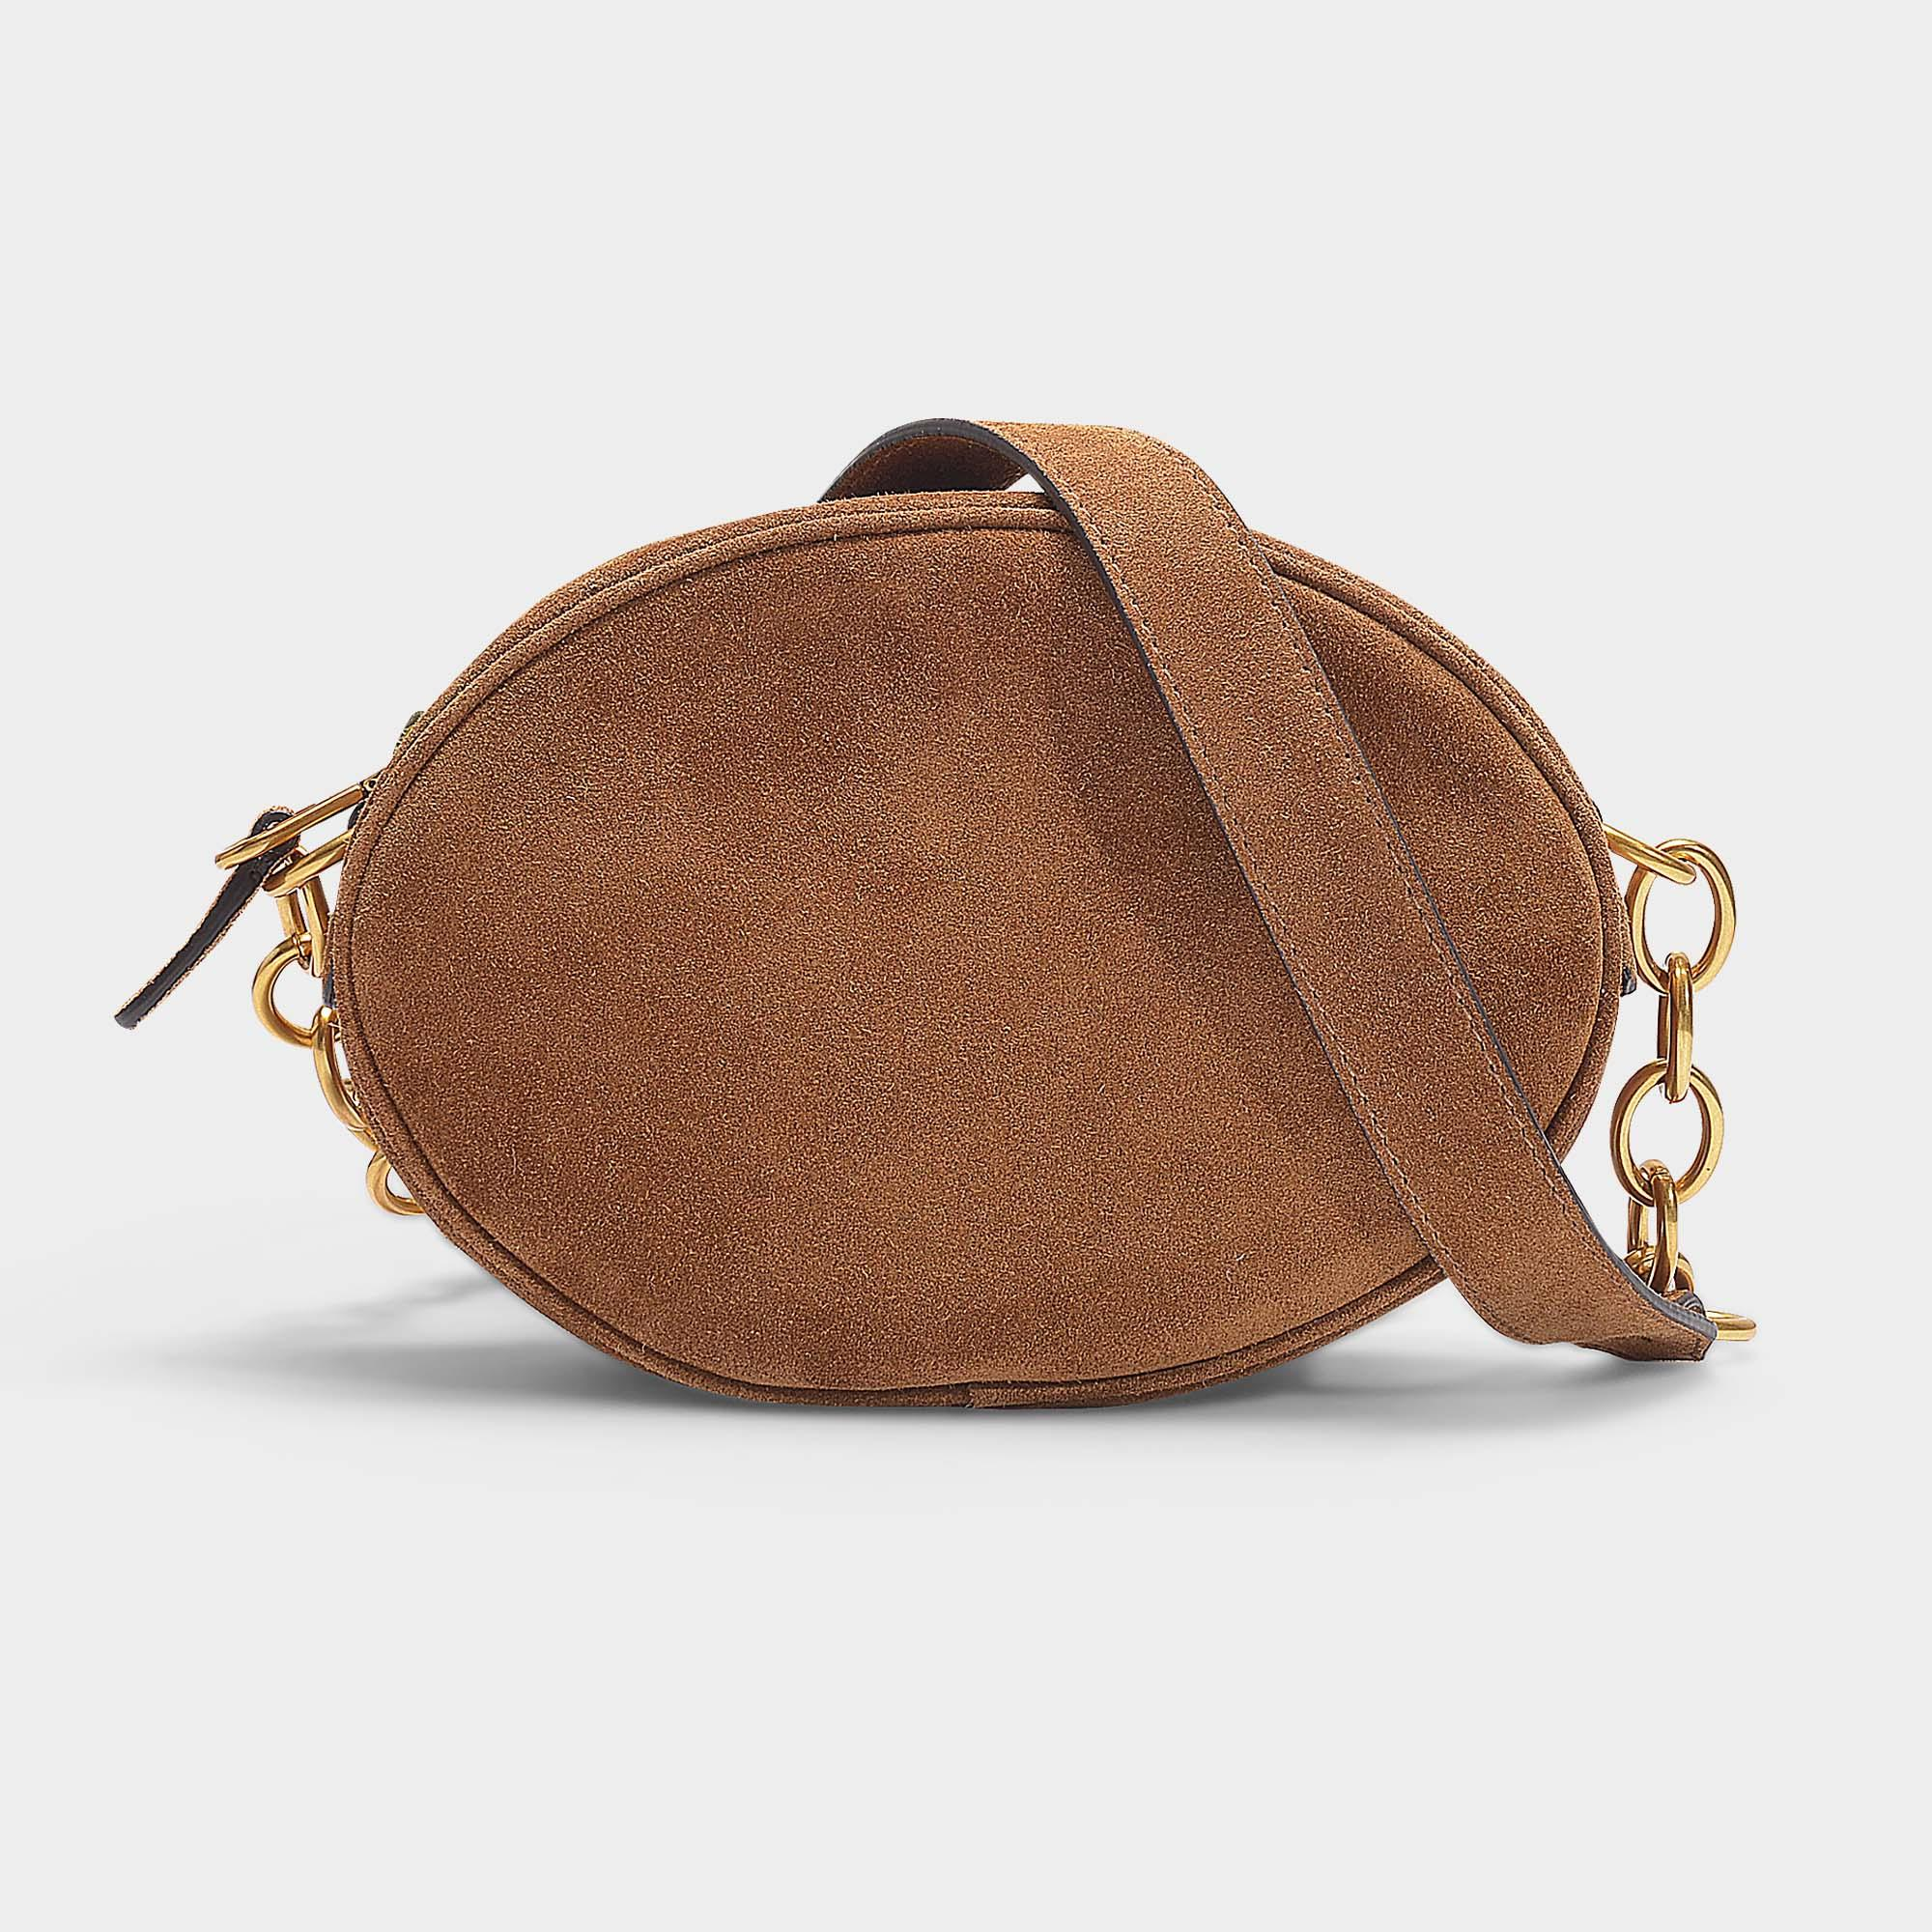 Polo Ralph Lauren Gilly Bag In Brown Suede in Brown - Lyst 7f8eee0336